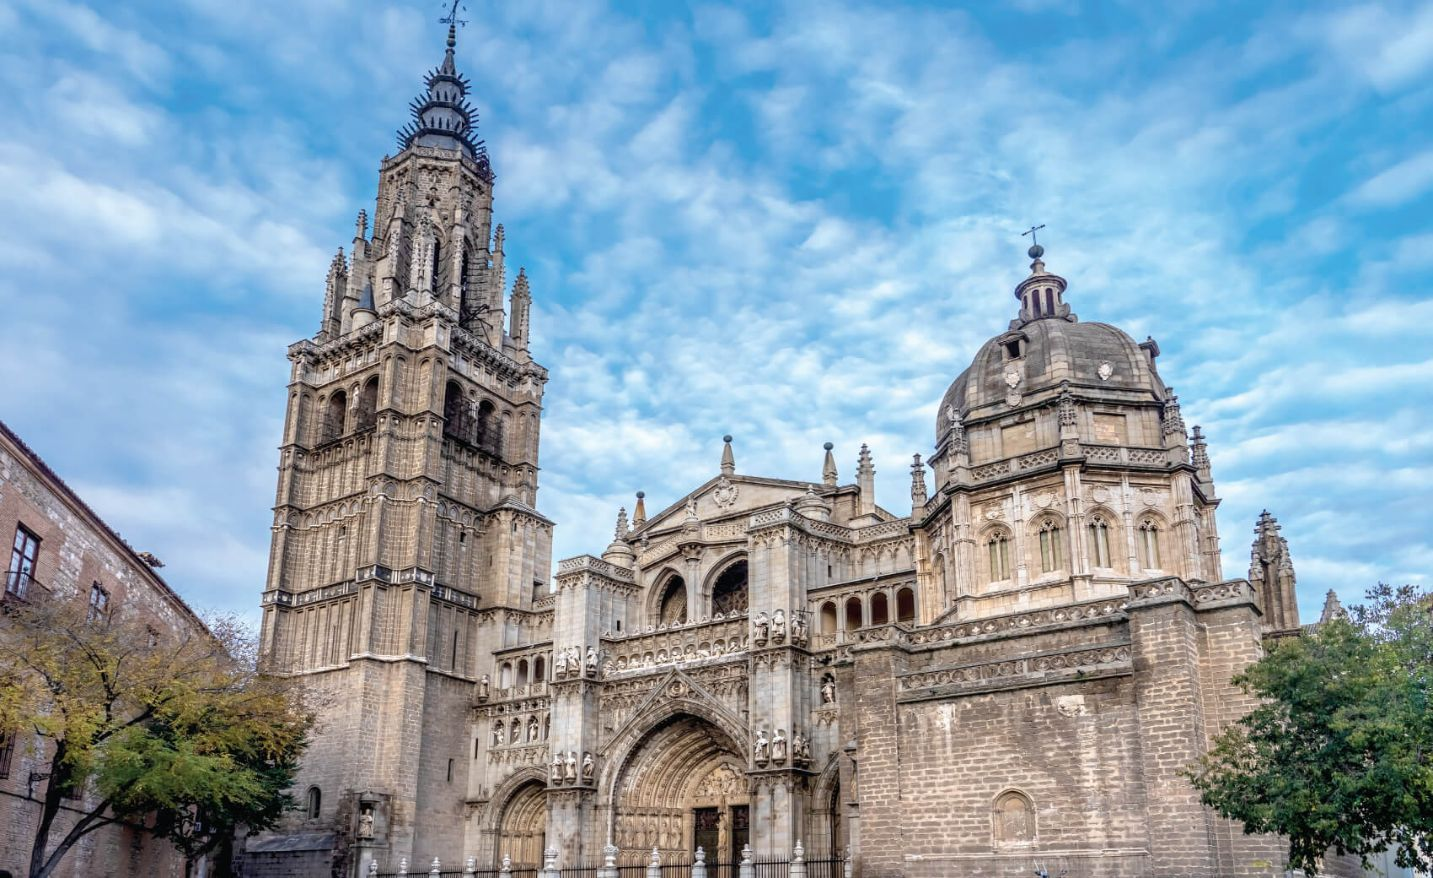 The Primate Cathedral of Saint Mary of Toledo, one of the three 13th-century High Gothic cathedrals